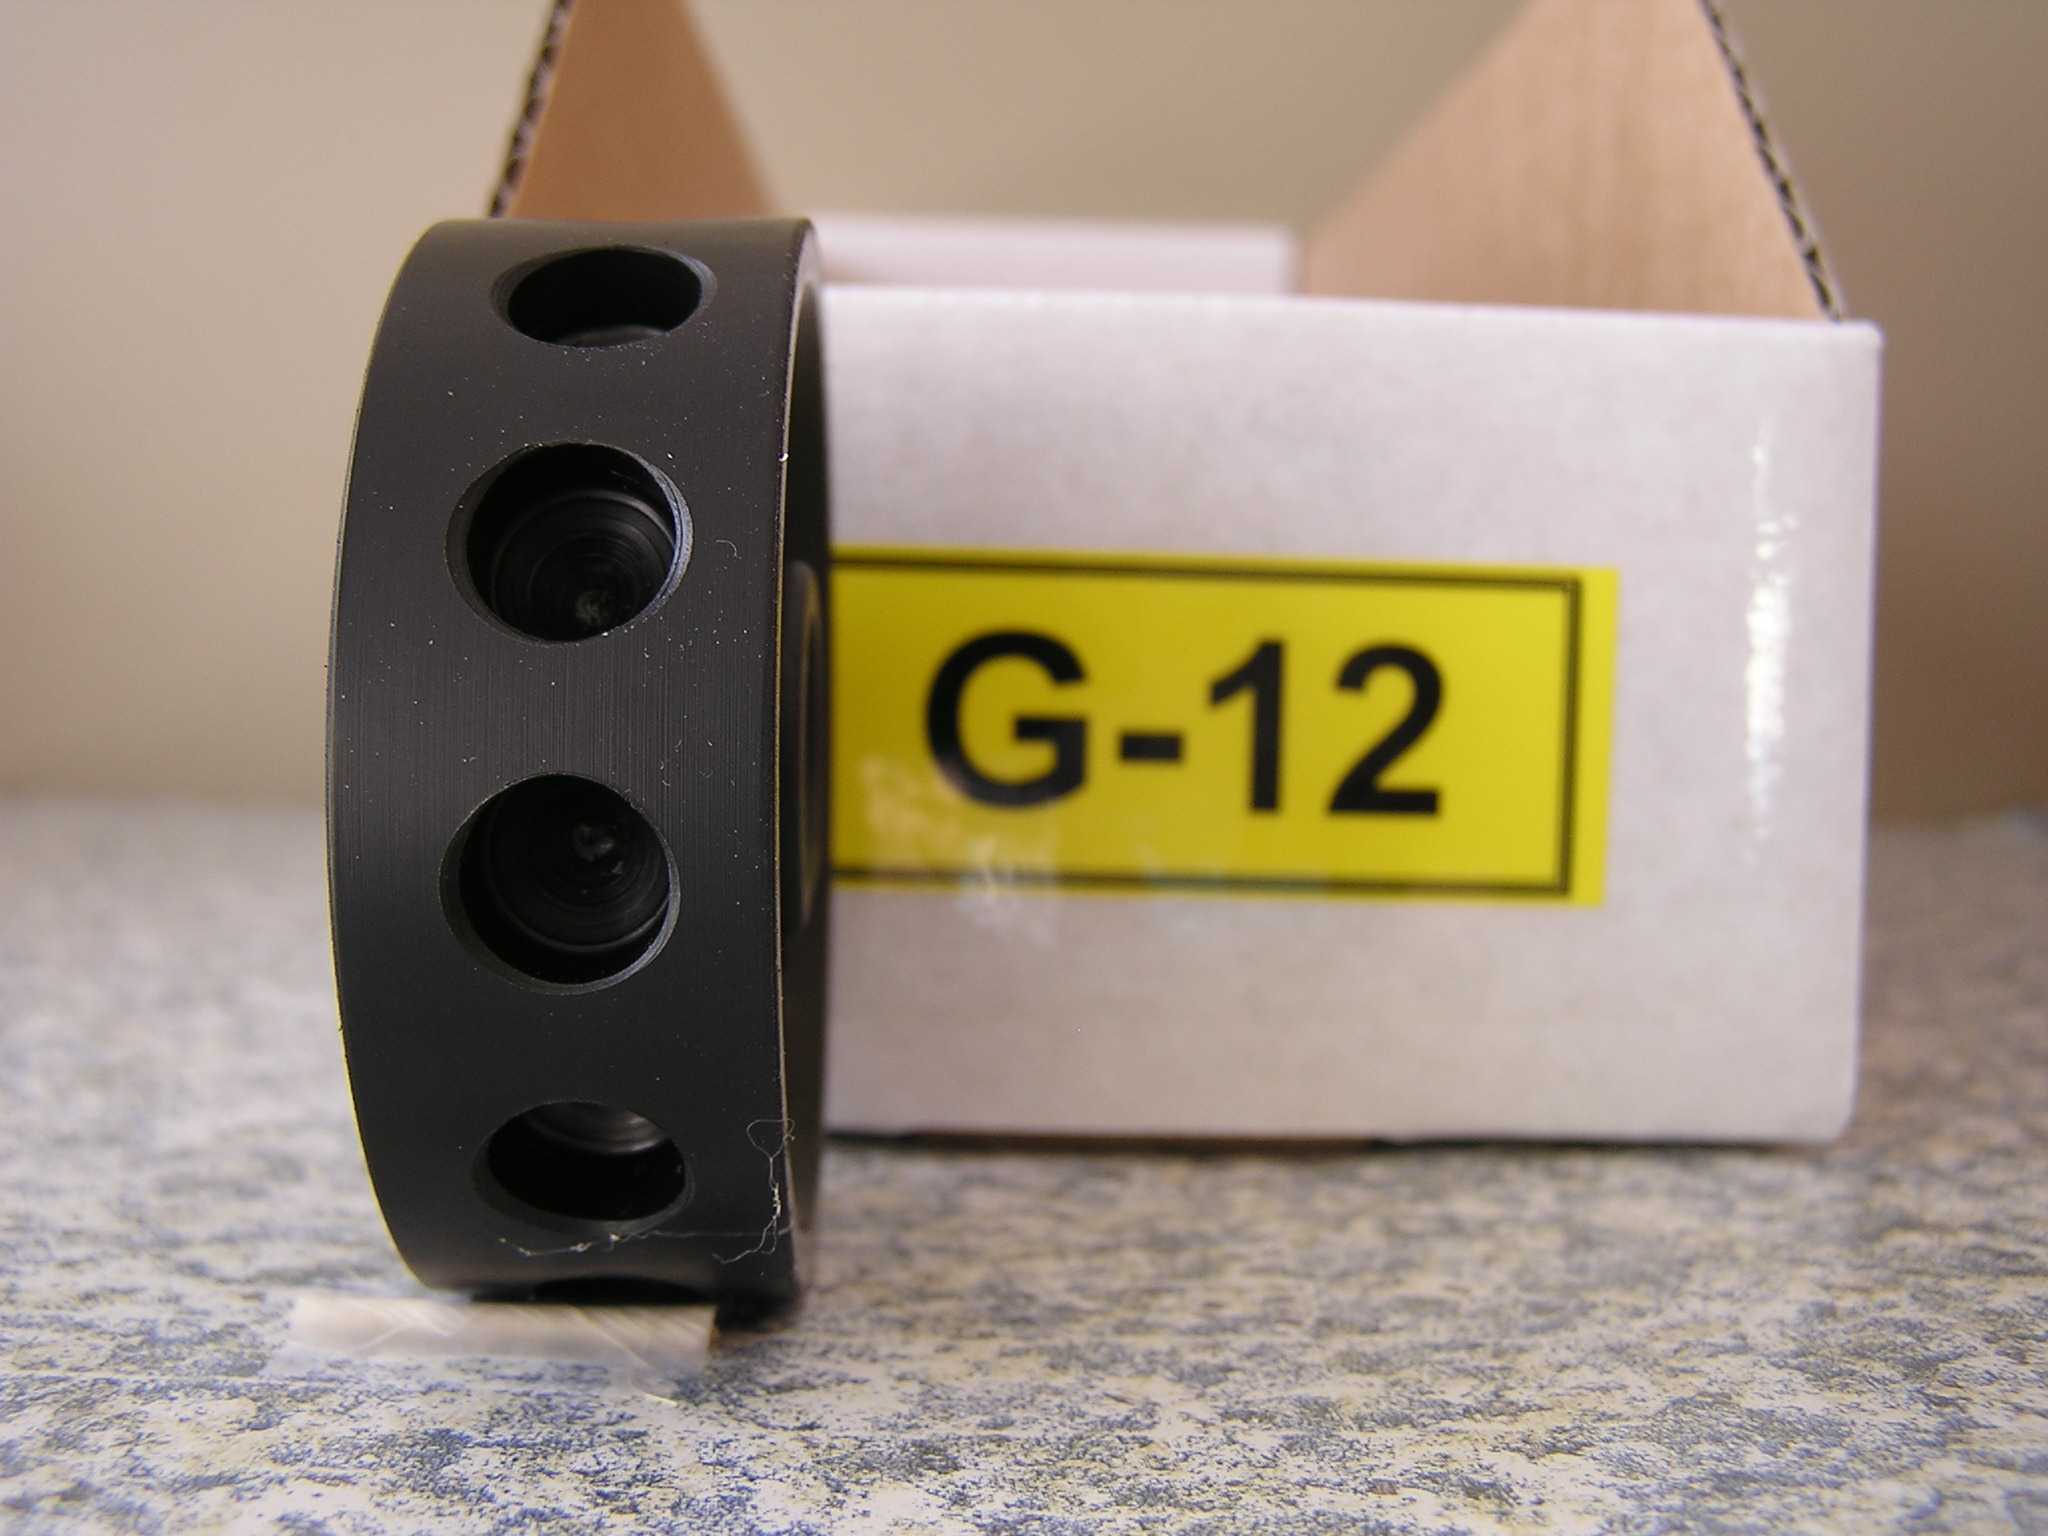 G-12 Roller for the Jang Seeder, 9 mm Slot, 12 Slots on the Roller